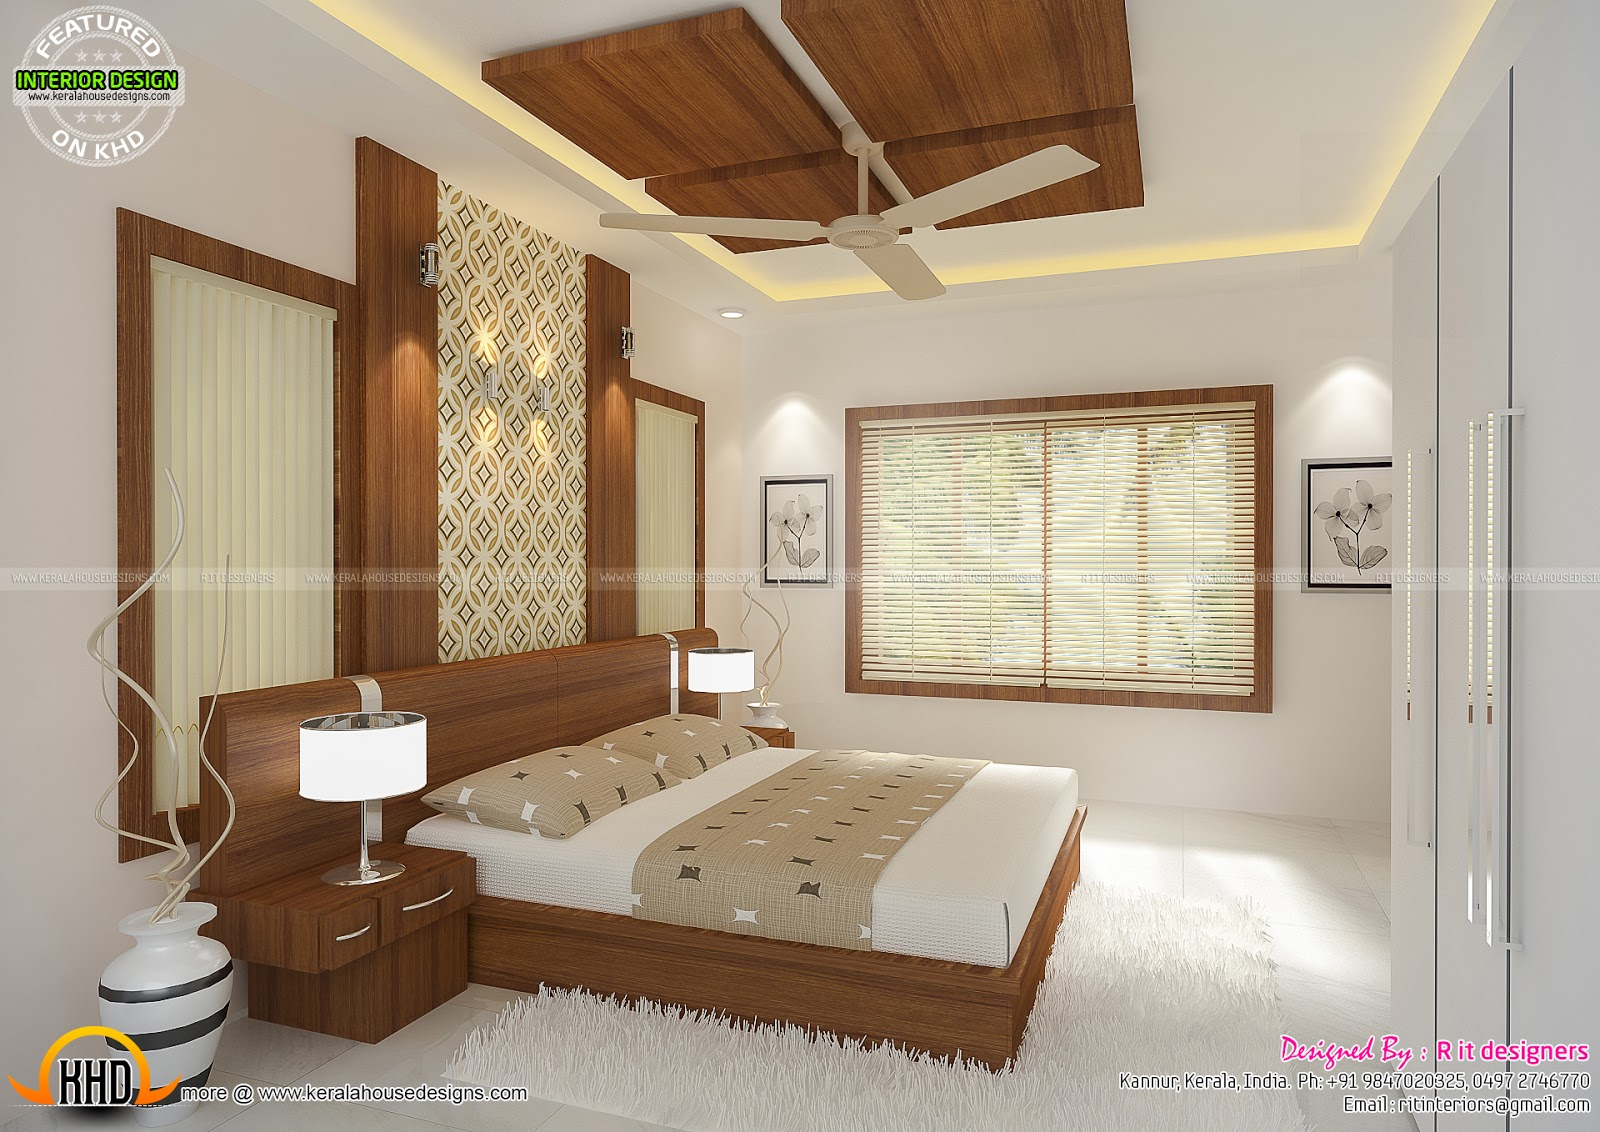 Interiors Of Bedrooms And Kitchen Kerala Home Design And